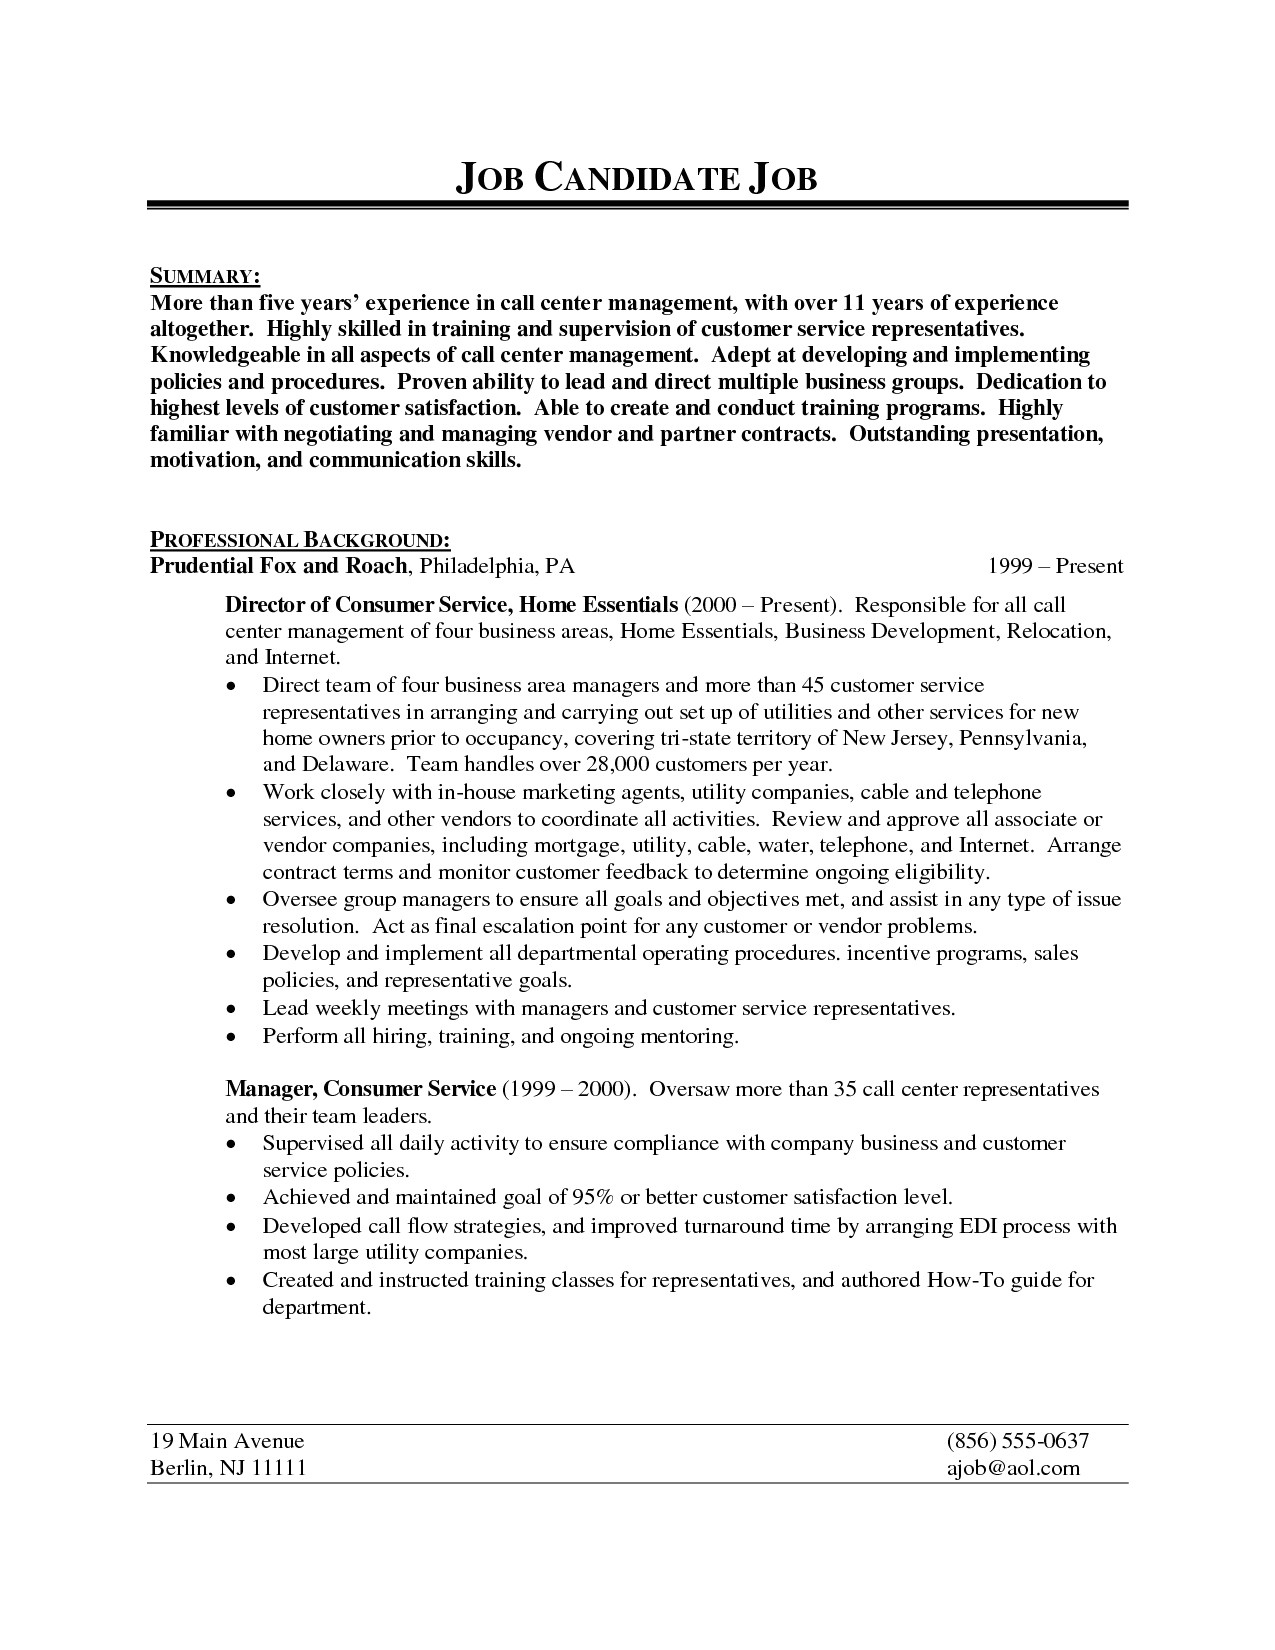 Sample Resume for Call Center Agent Applicant 13 New Sample Call Center Agent Resume Resume Sample